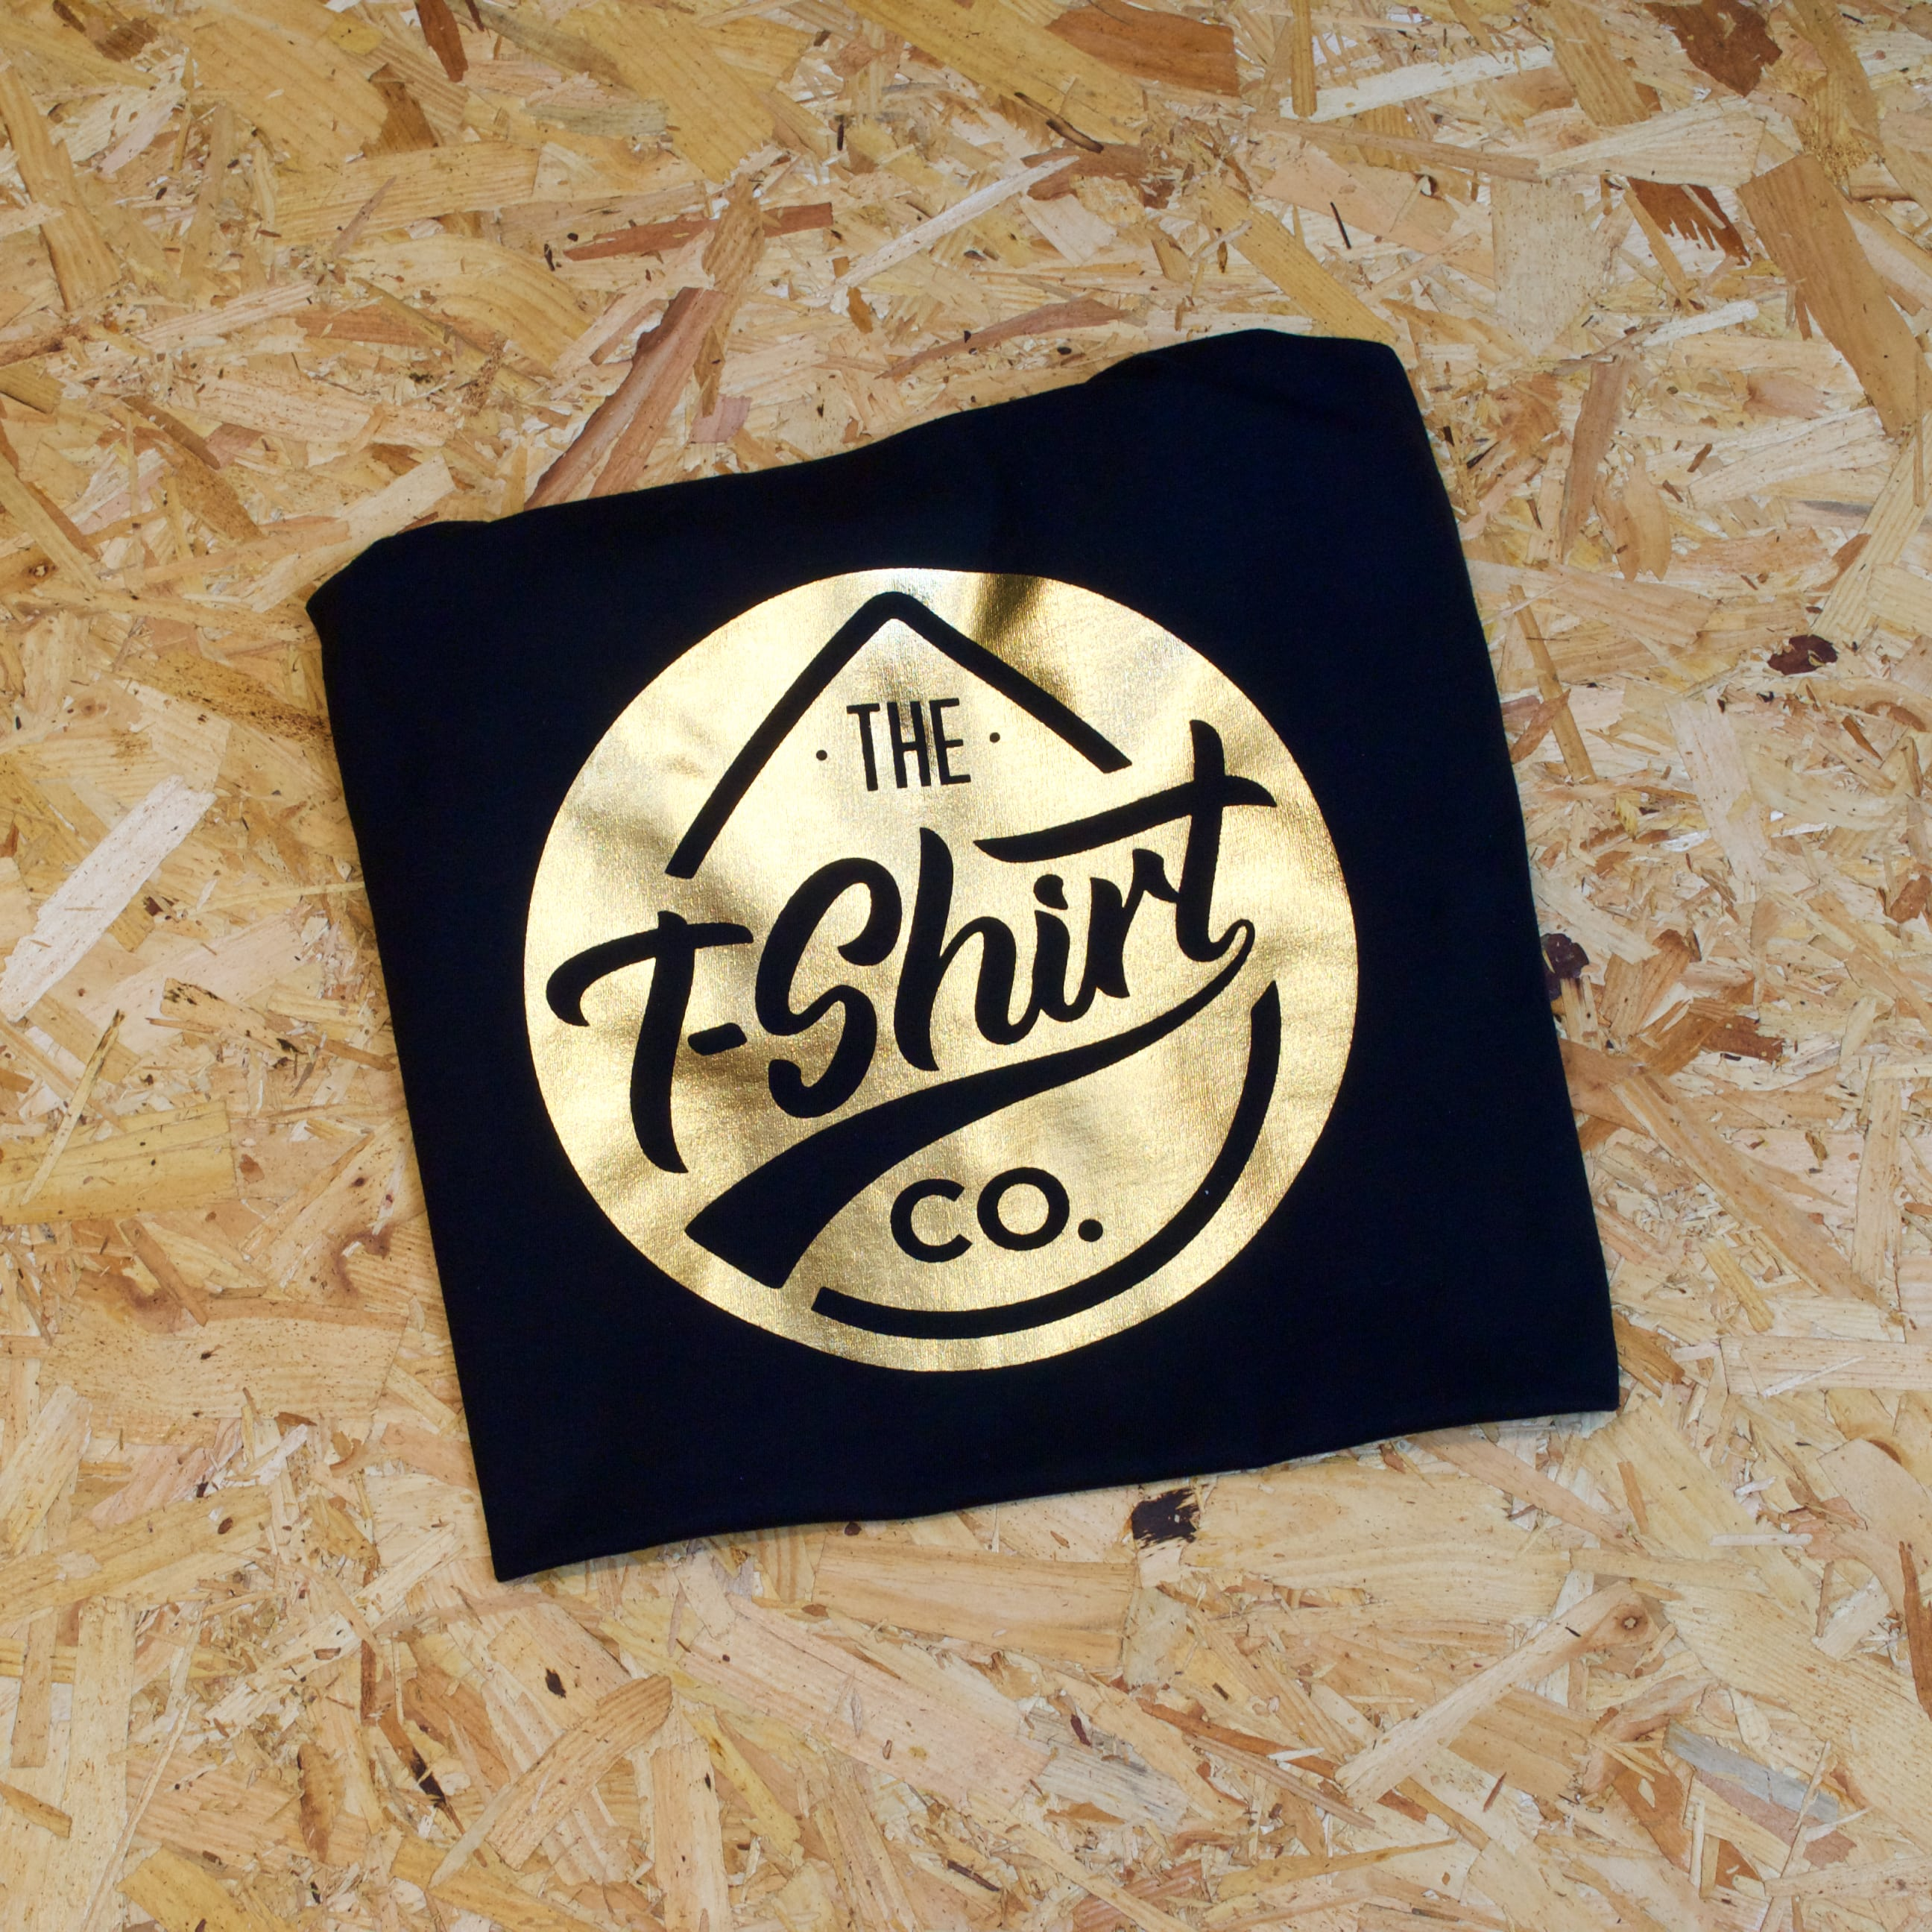 Gold Foil print on classic black t-shirt from The T-Shirt Company Dublin